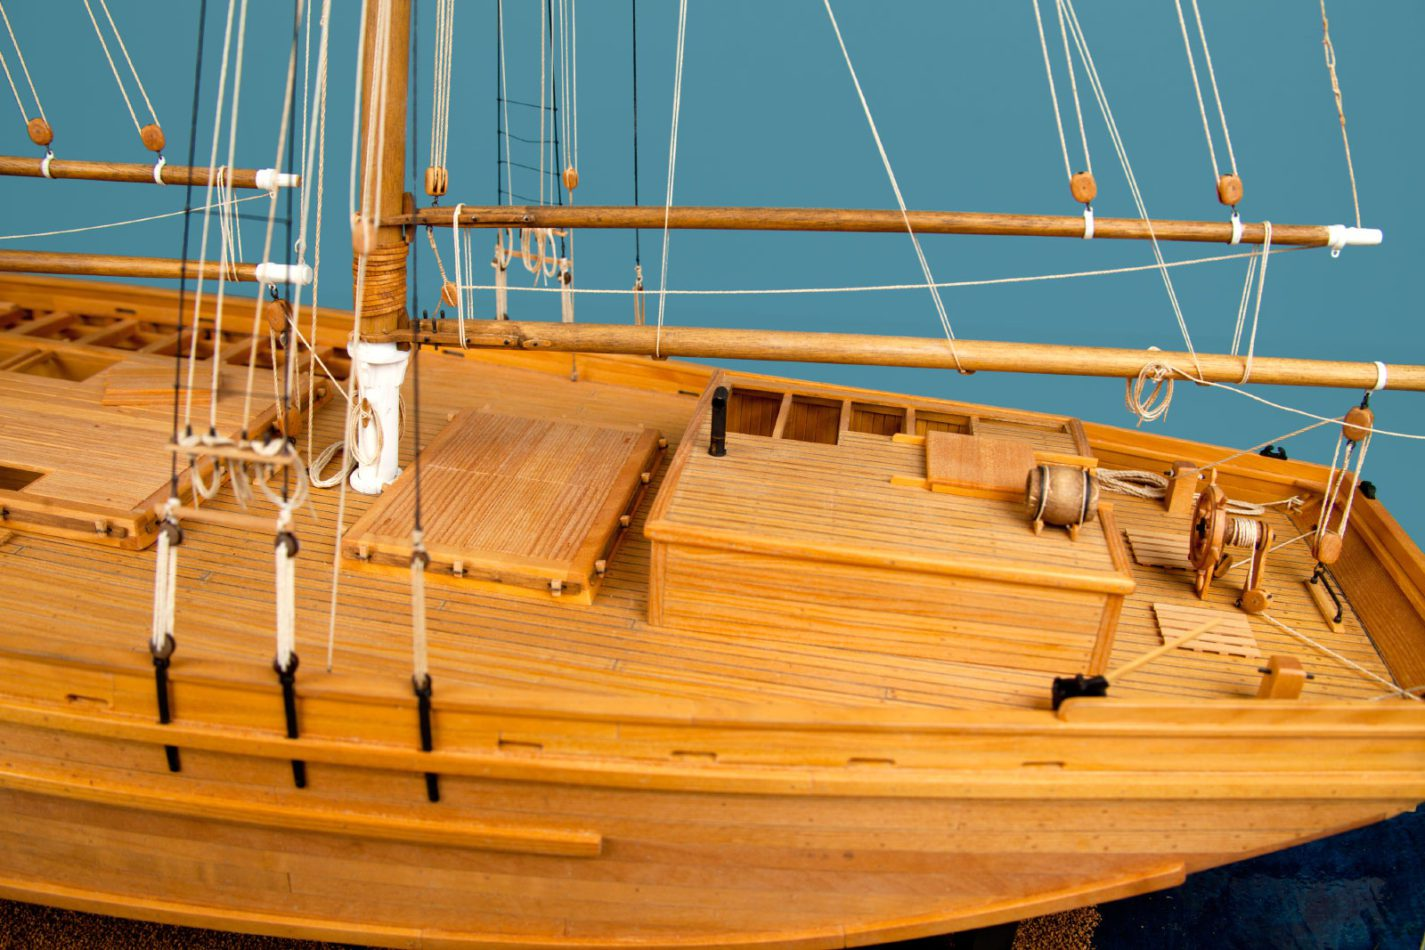 Regenia S model ship at the Ships of the World exhibit at San Mateo County History Museum